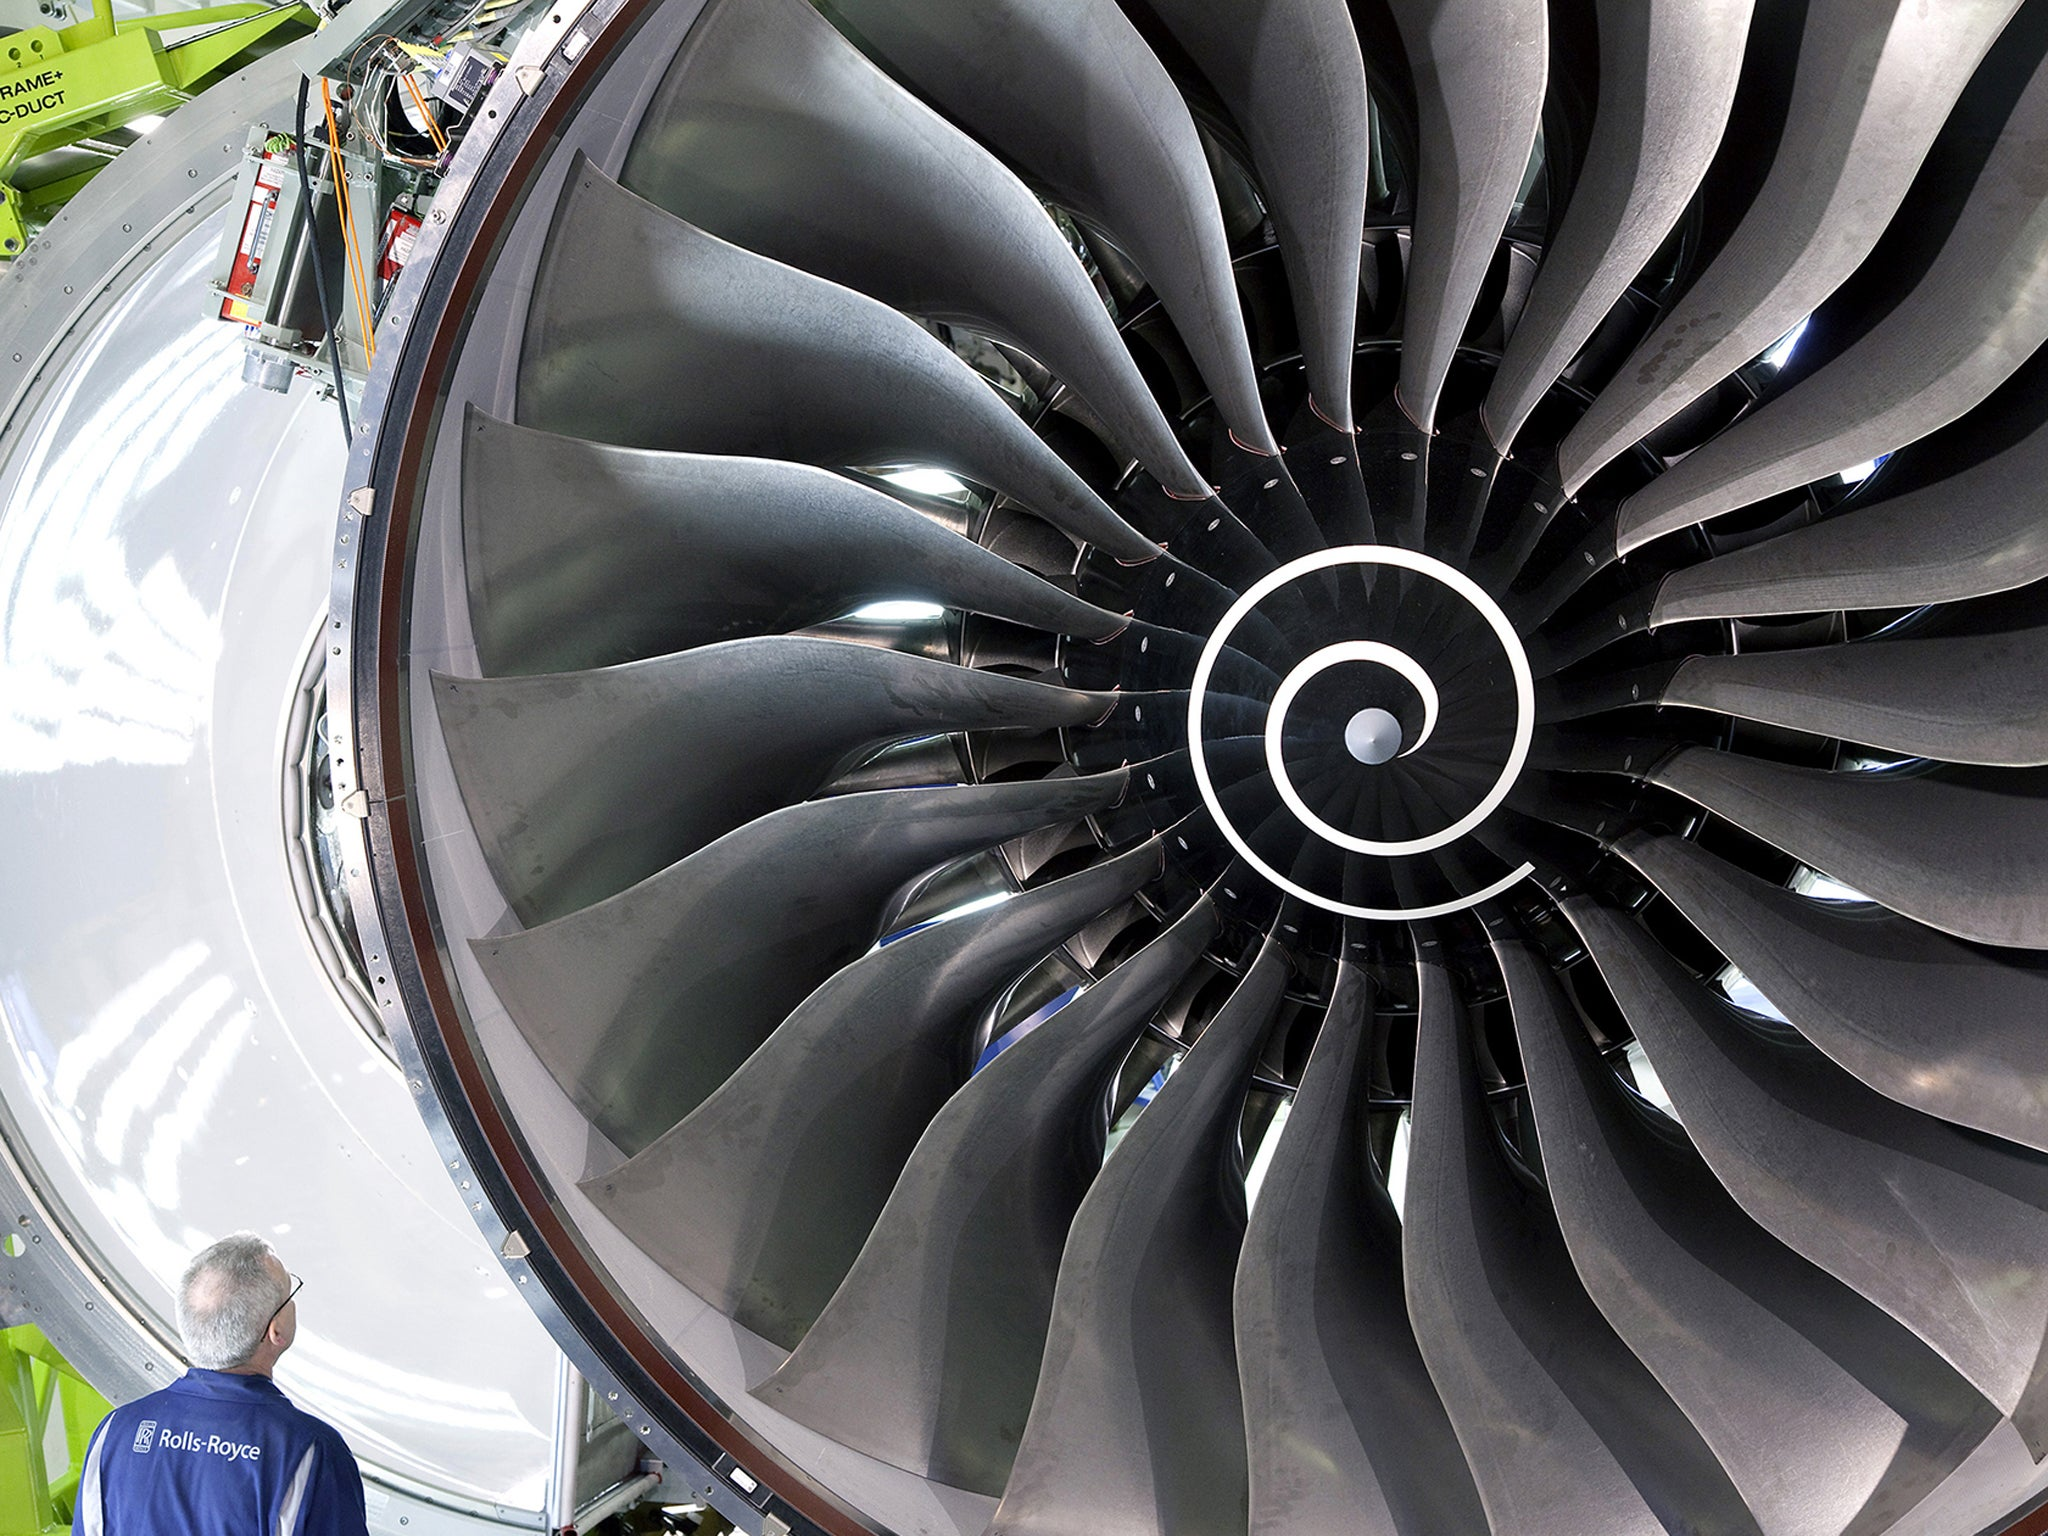 analysis of annual financial performance of rolls royce